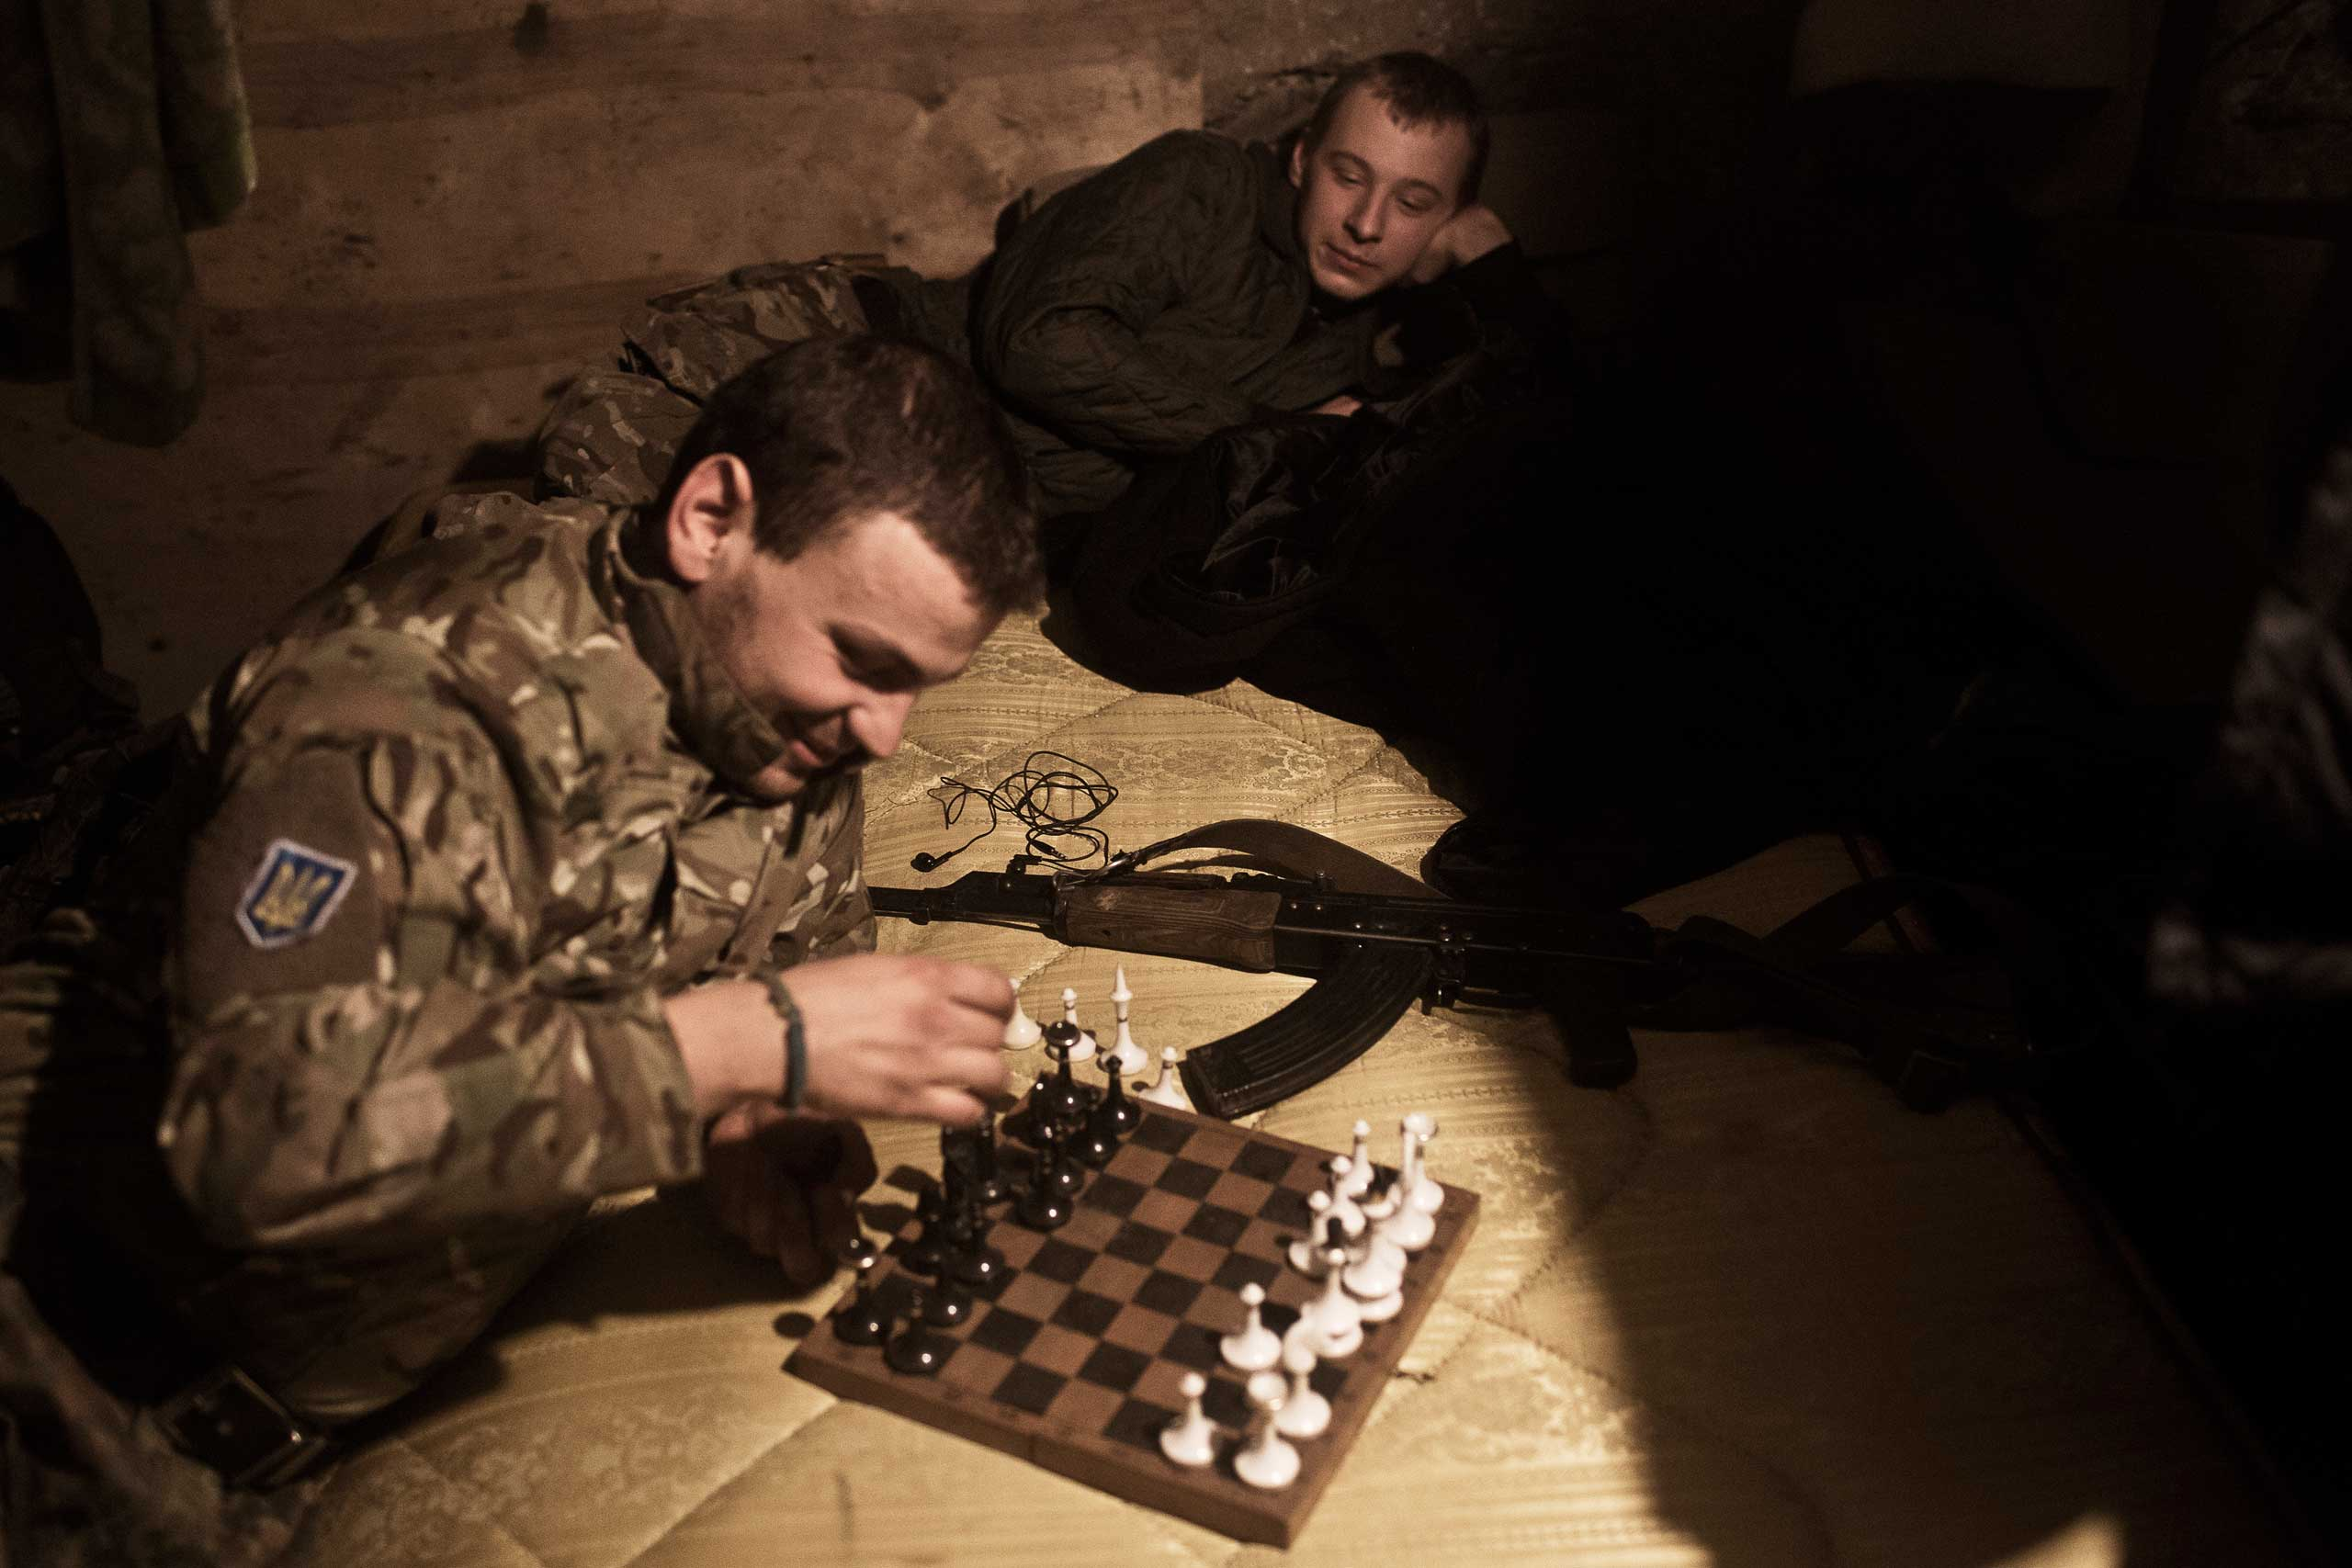 Members of the Dnipro-1 battalion play chess in their base in Pisky, Feb. 9, 2015.